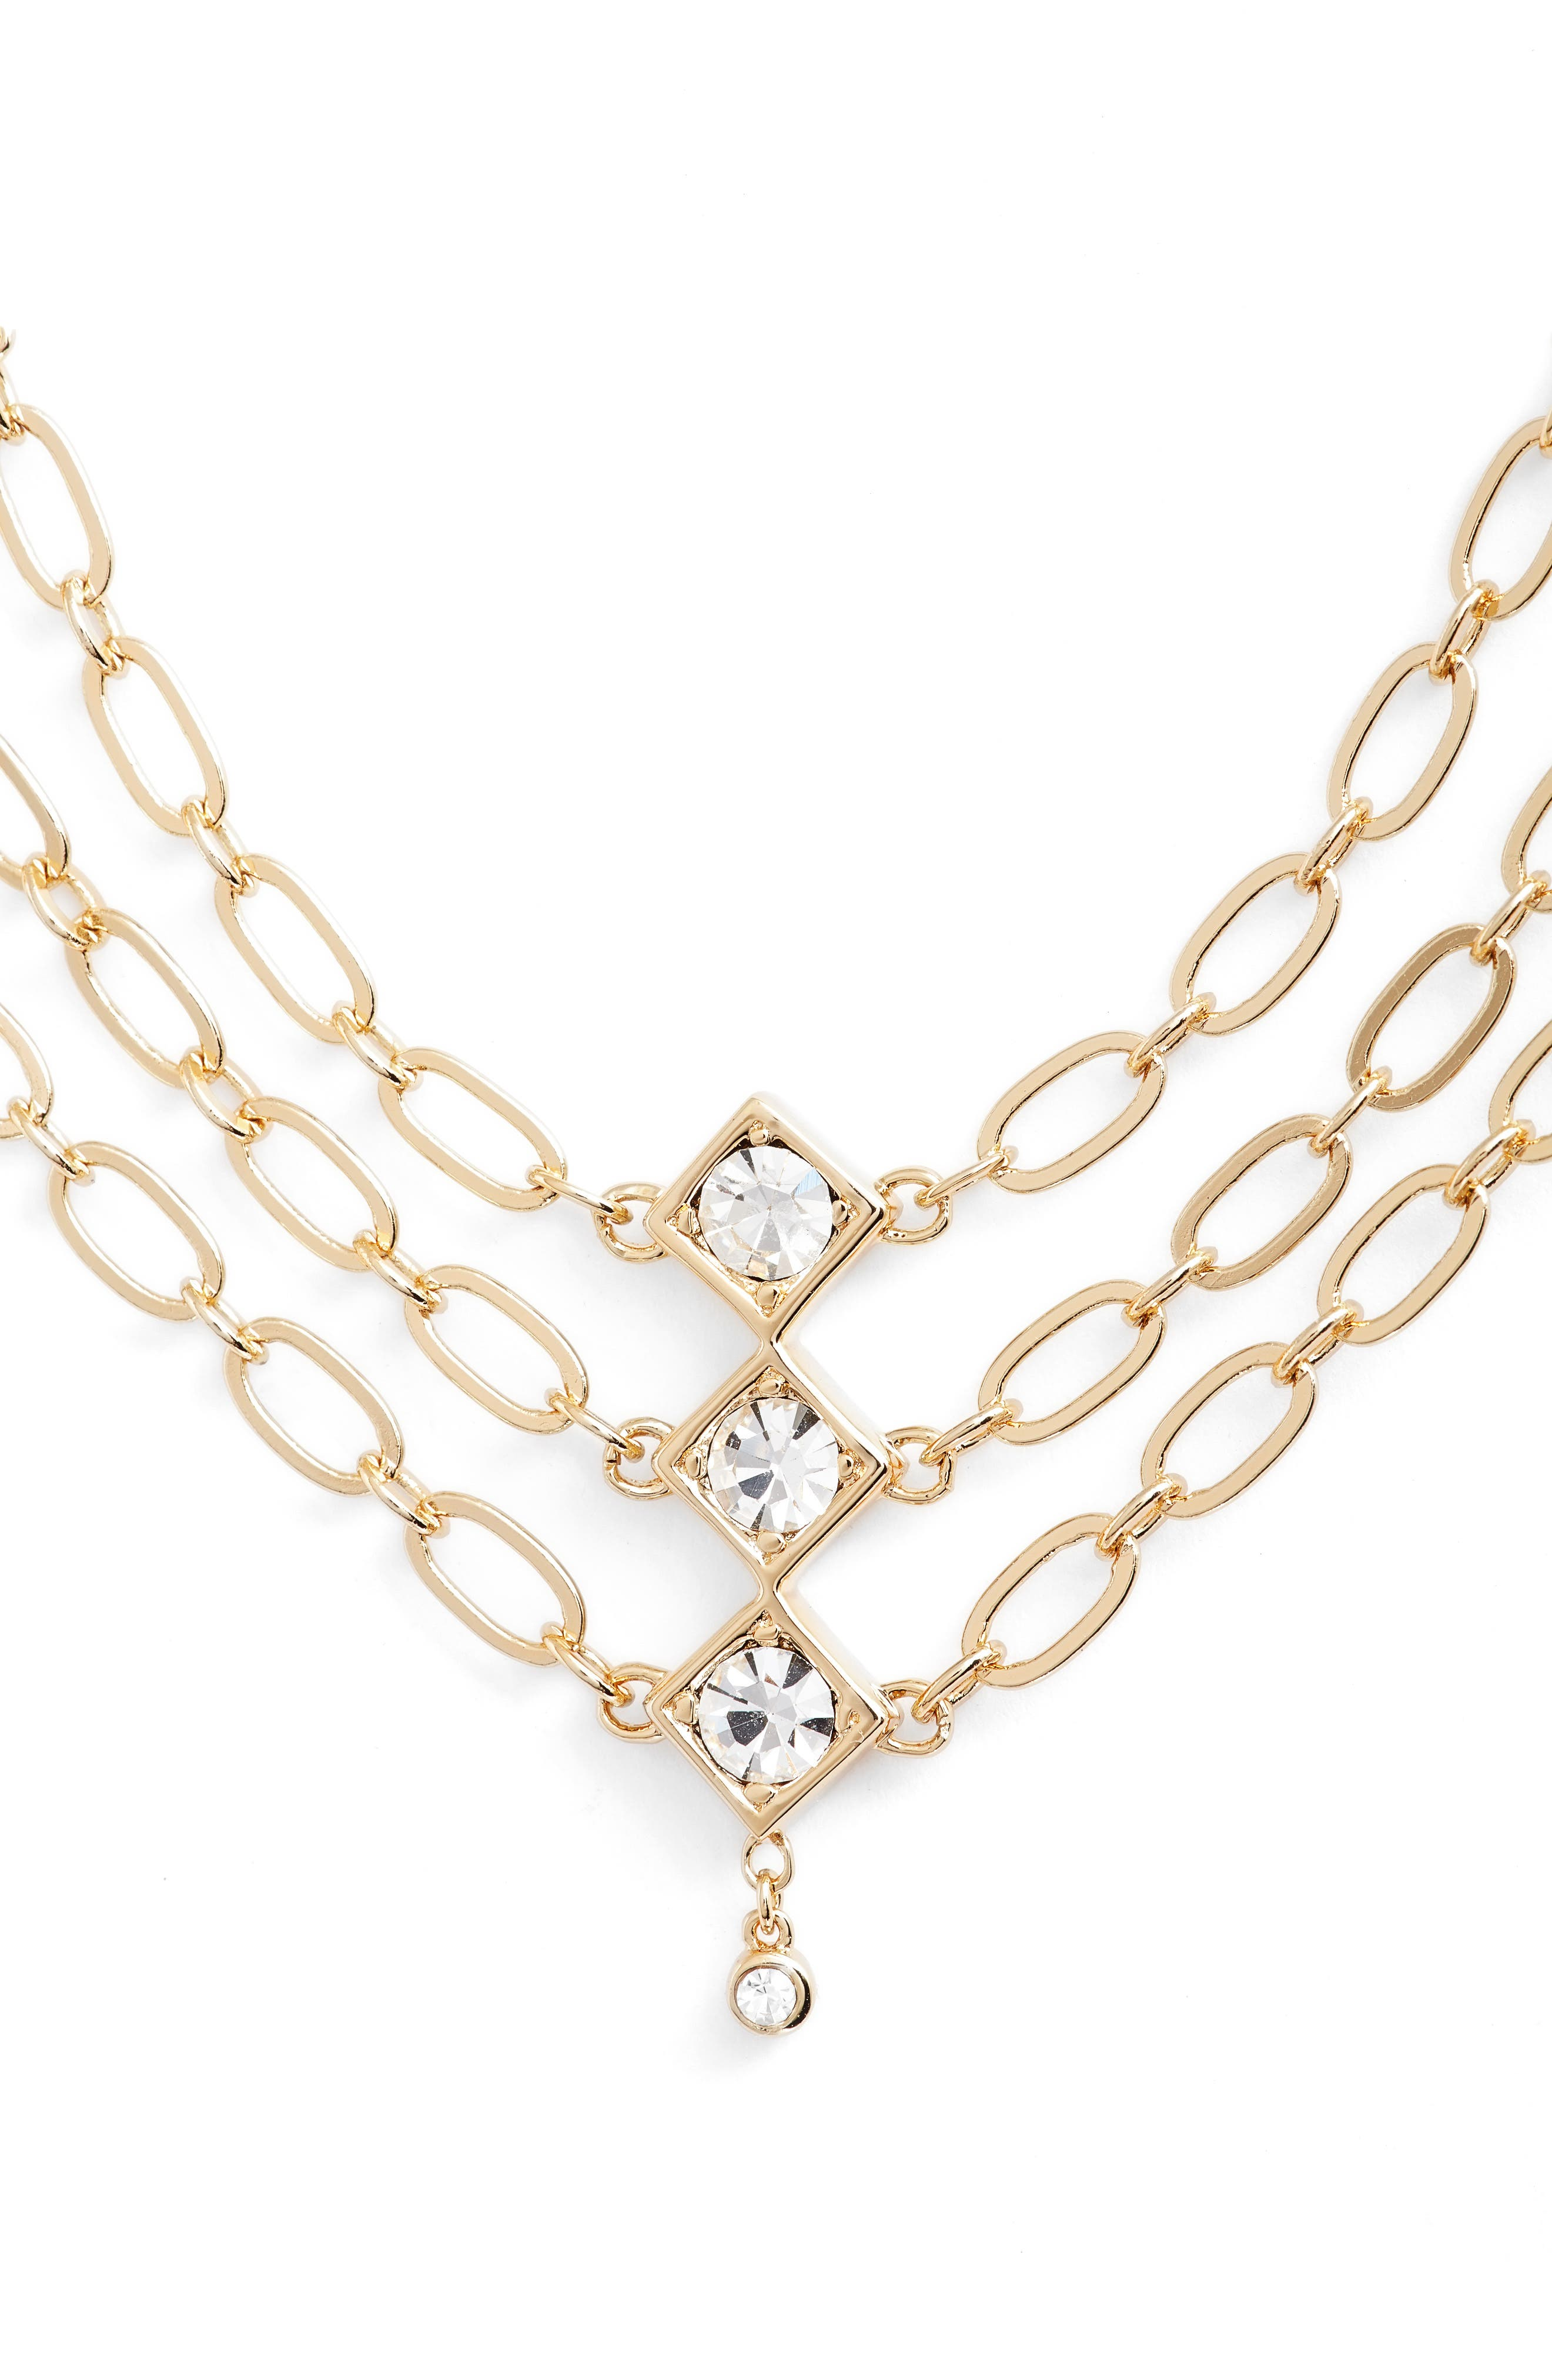 Tulum Multistrand Necklace,                         Main,                         color, Gold/ Clear